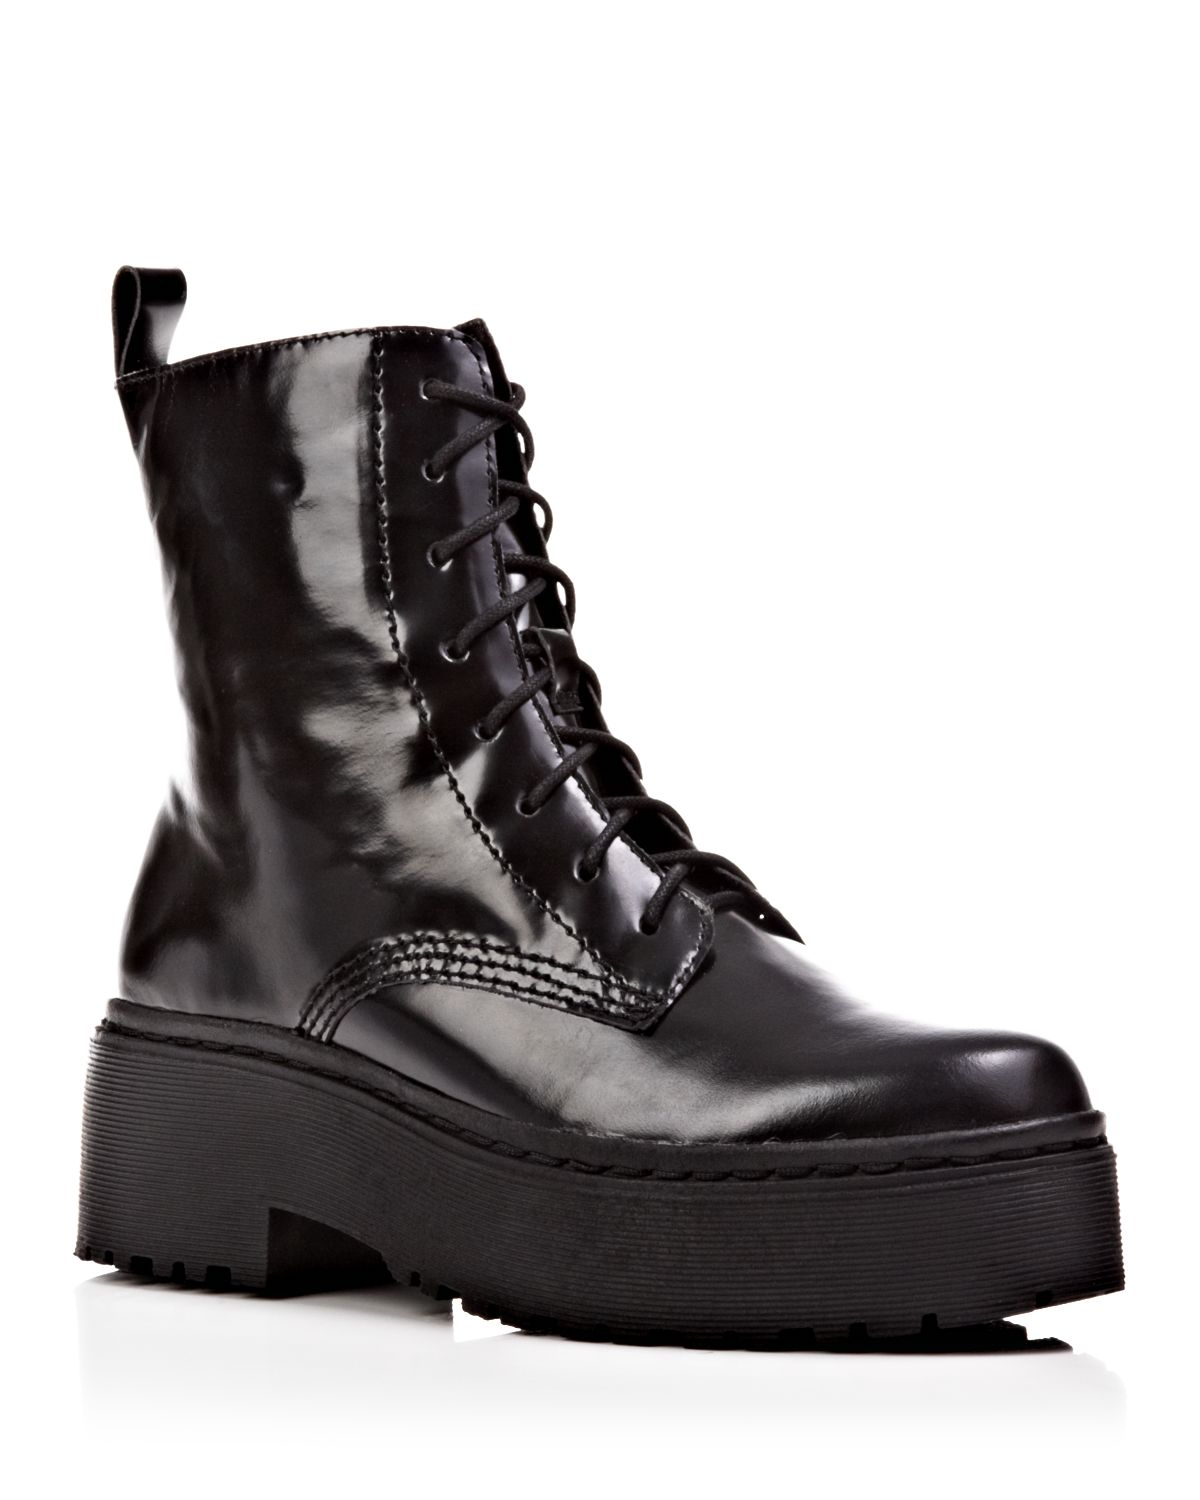 Jeffrey campbell Lace Up Platform Combat Boots - Finnick in Black ...